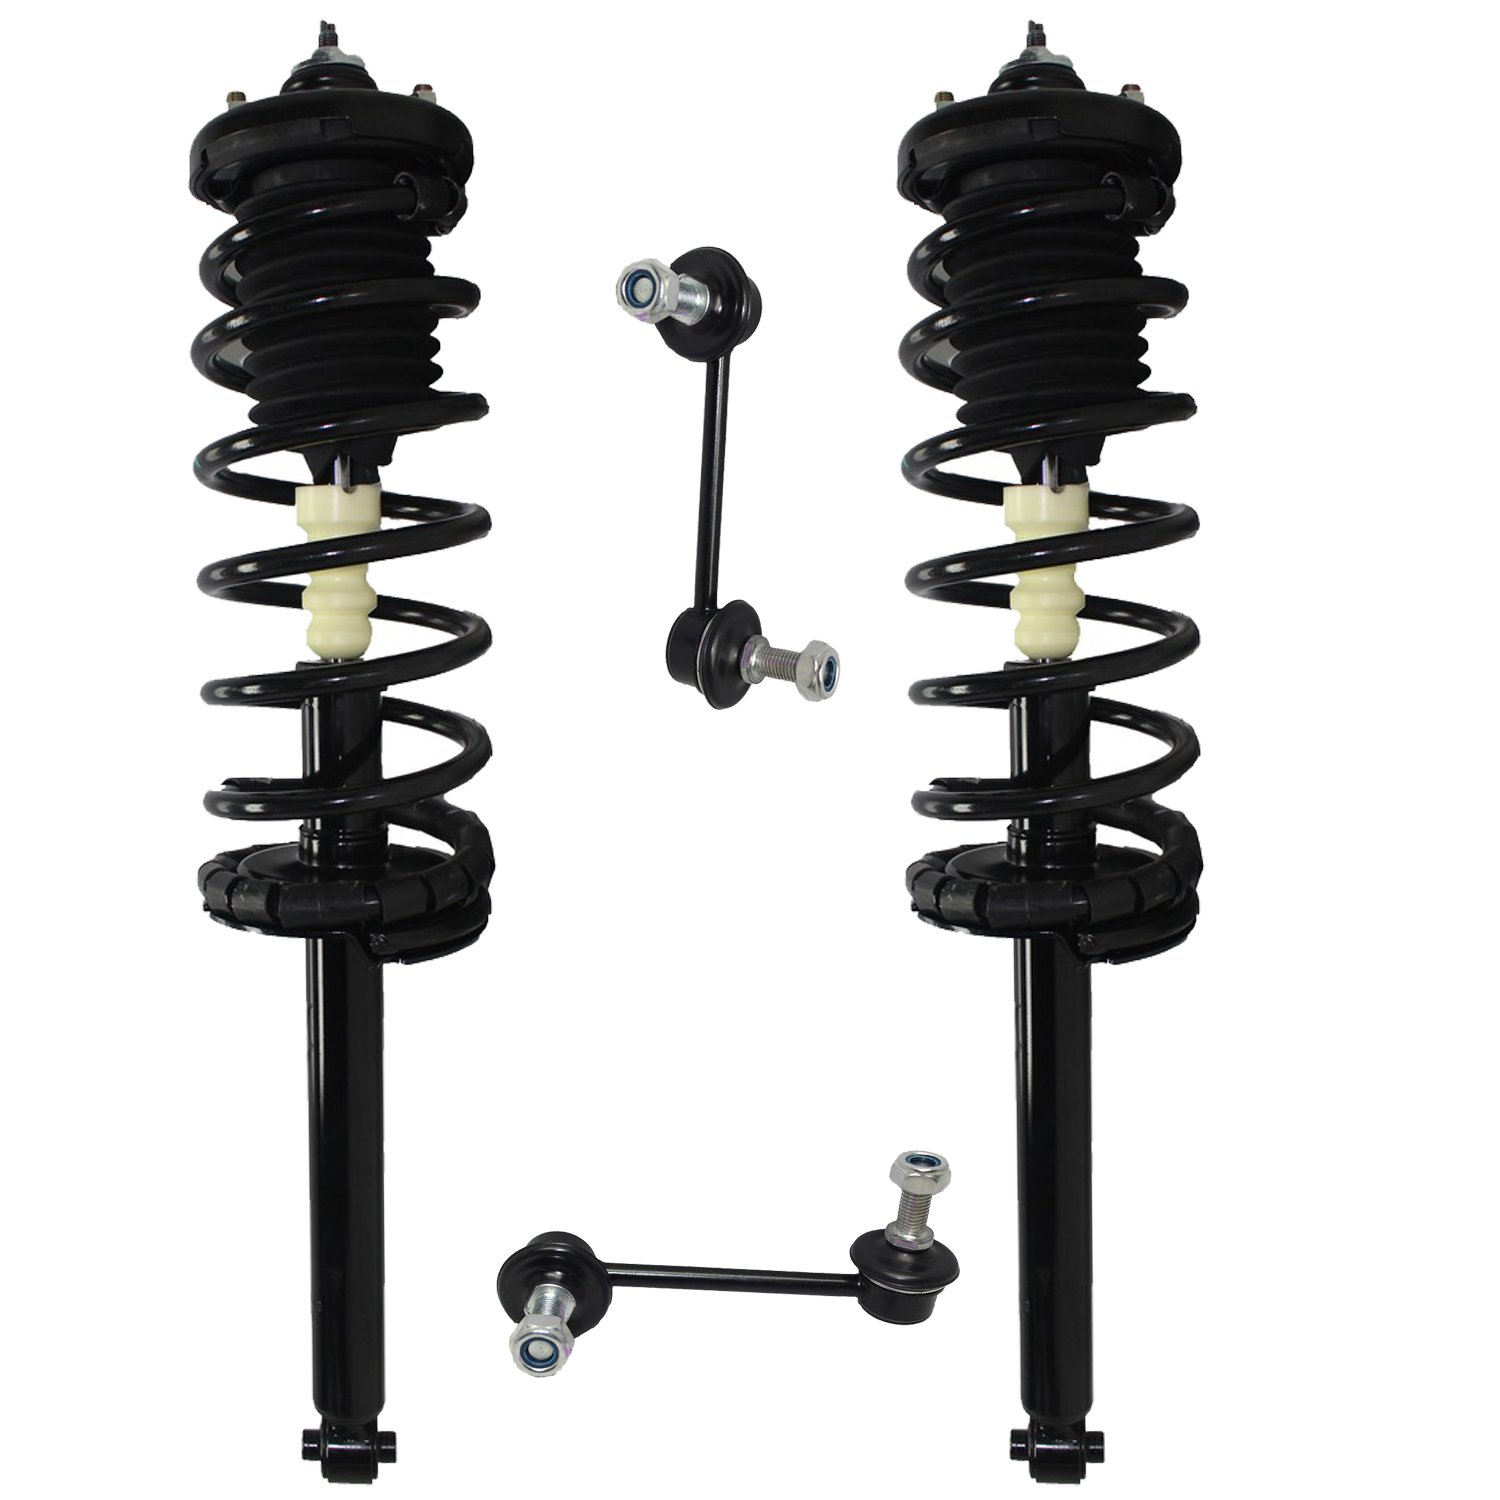 Sixity 2014 for Polaris 800 Ranger 6X6 Front Right Axles XT Passenger R14HR76AA AJ 6X6 Complete Side